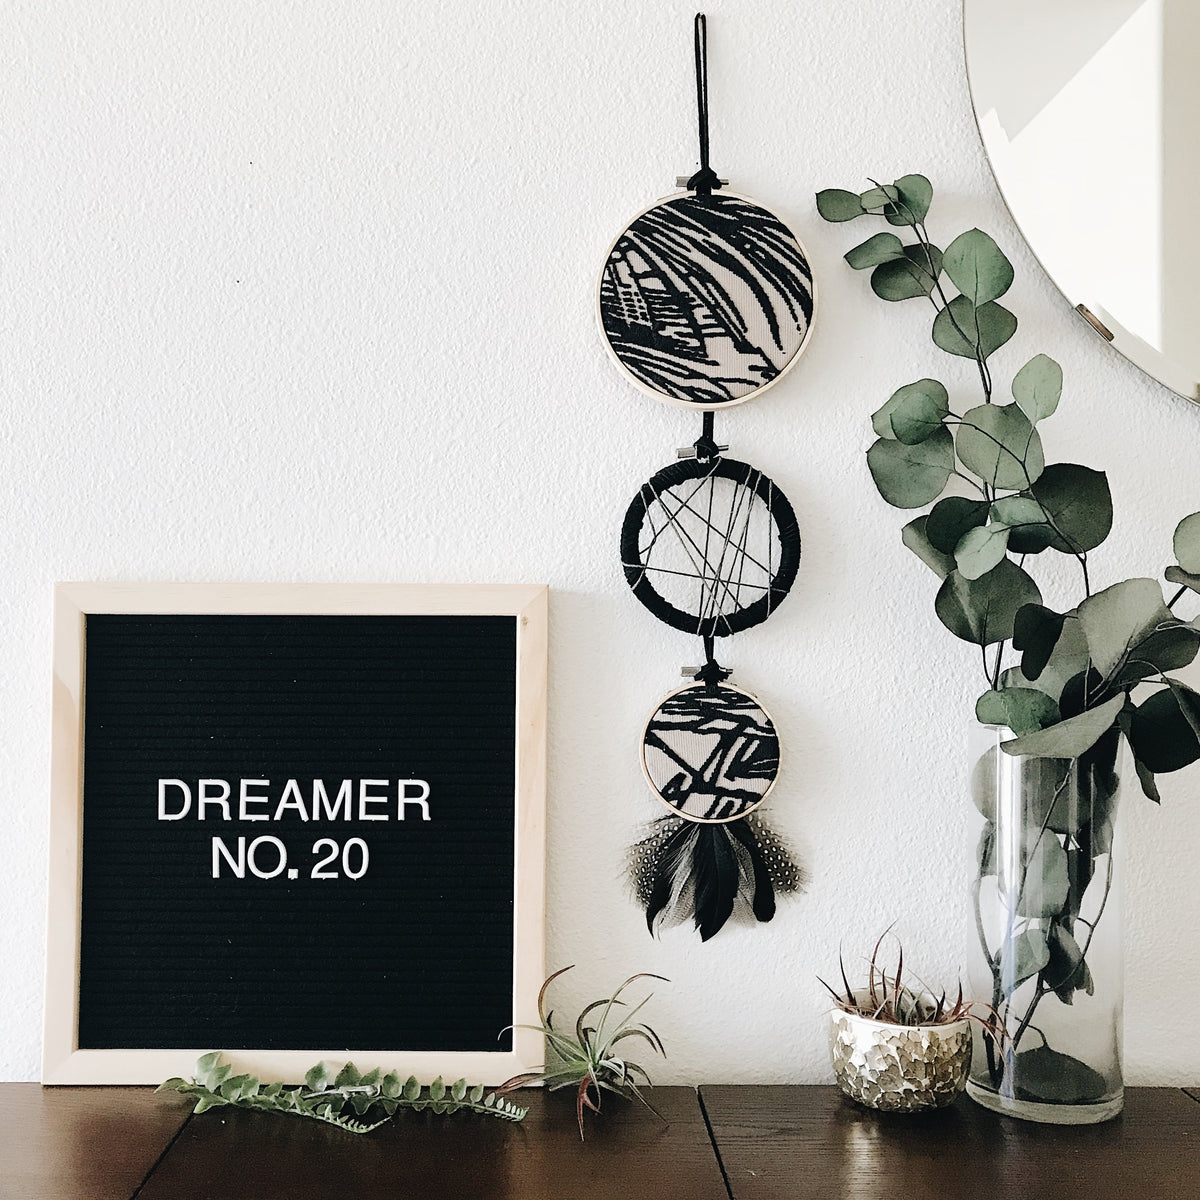 Dreamer No. 20 | 100 Days of Dreamers